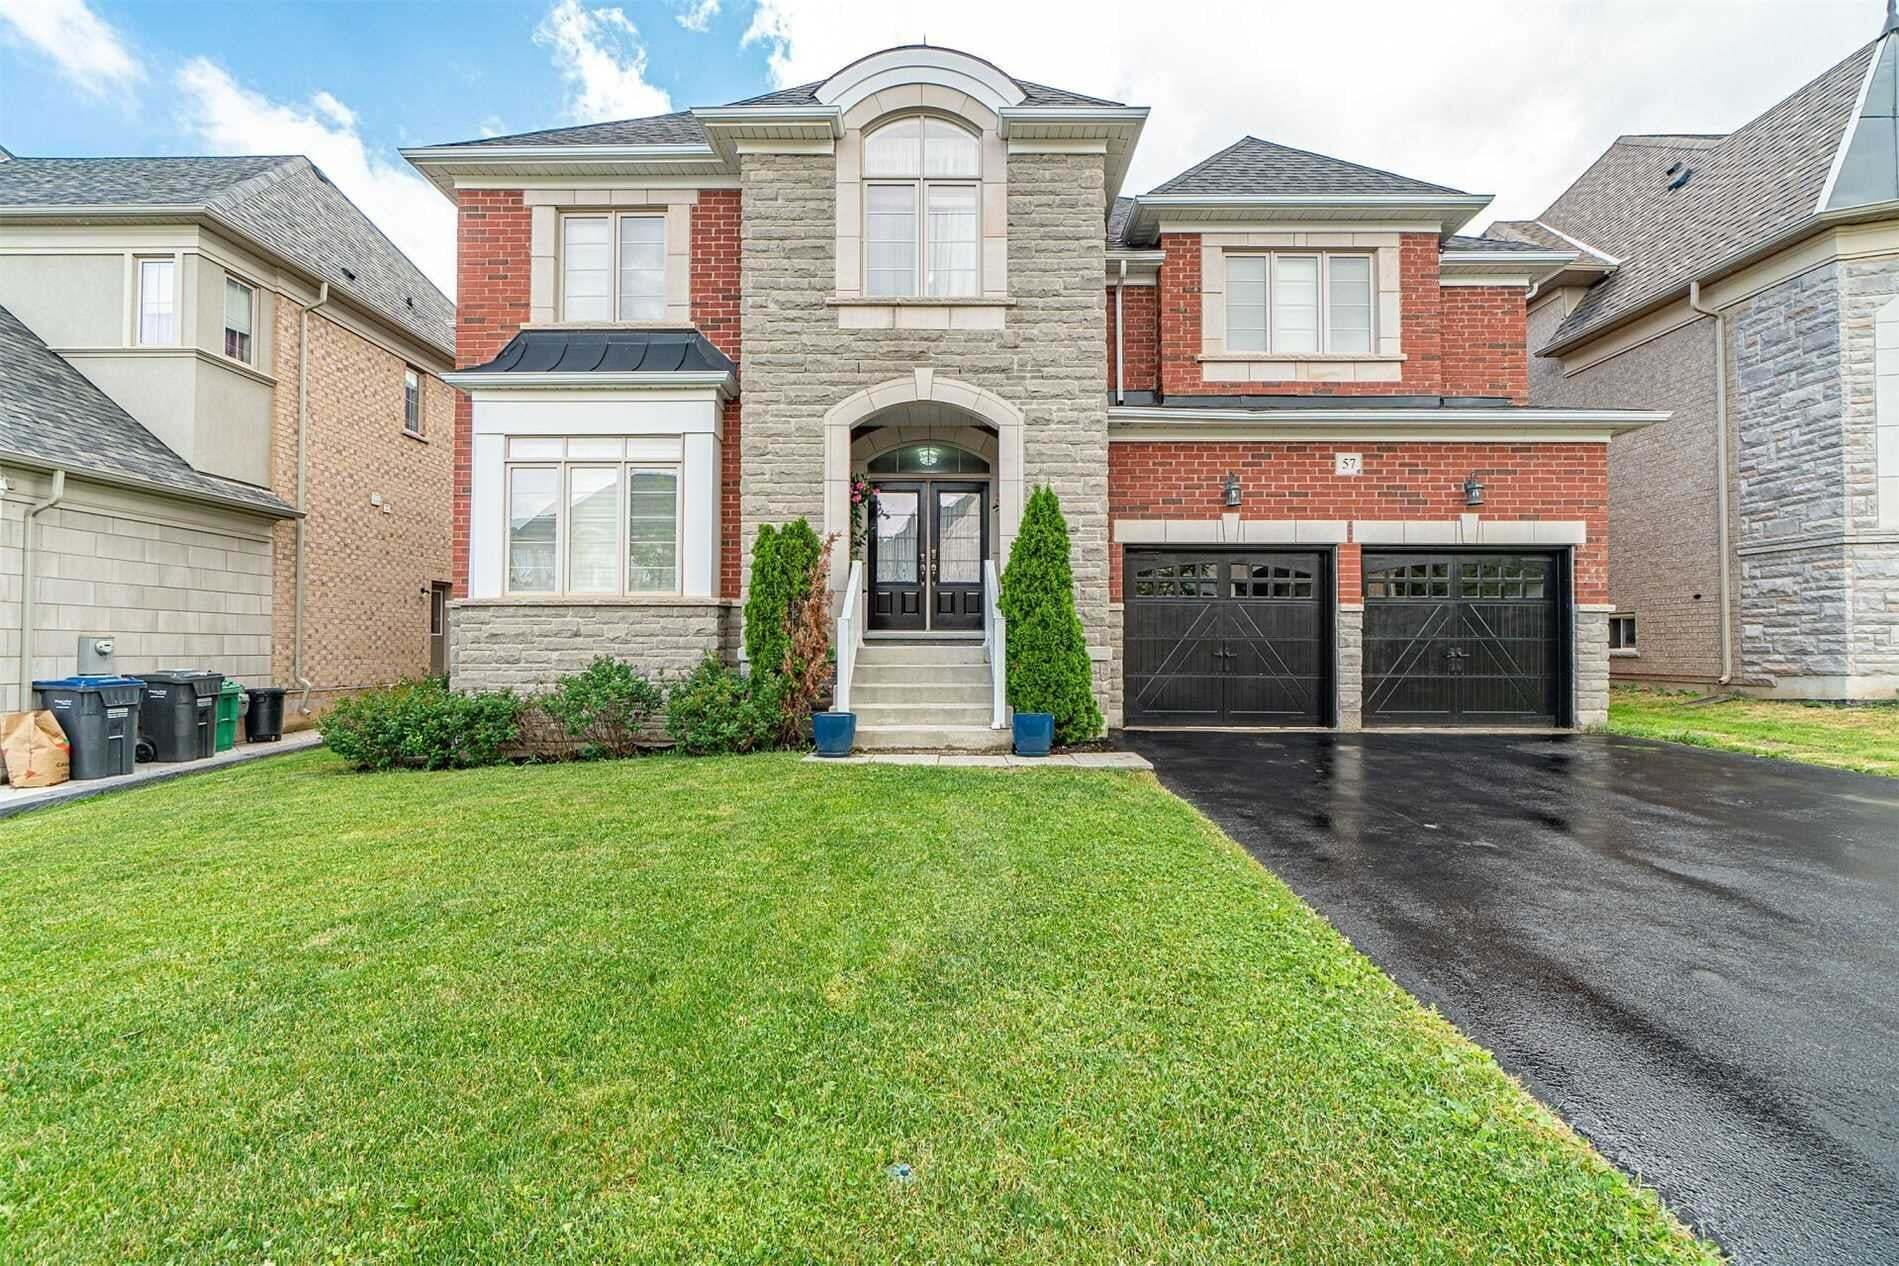 House for sale at 57 Beacon Hill Dr Brampton Ontario - MLS: W4825577